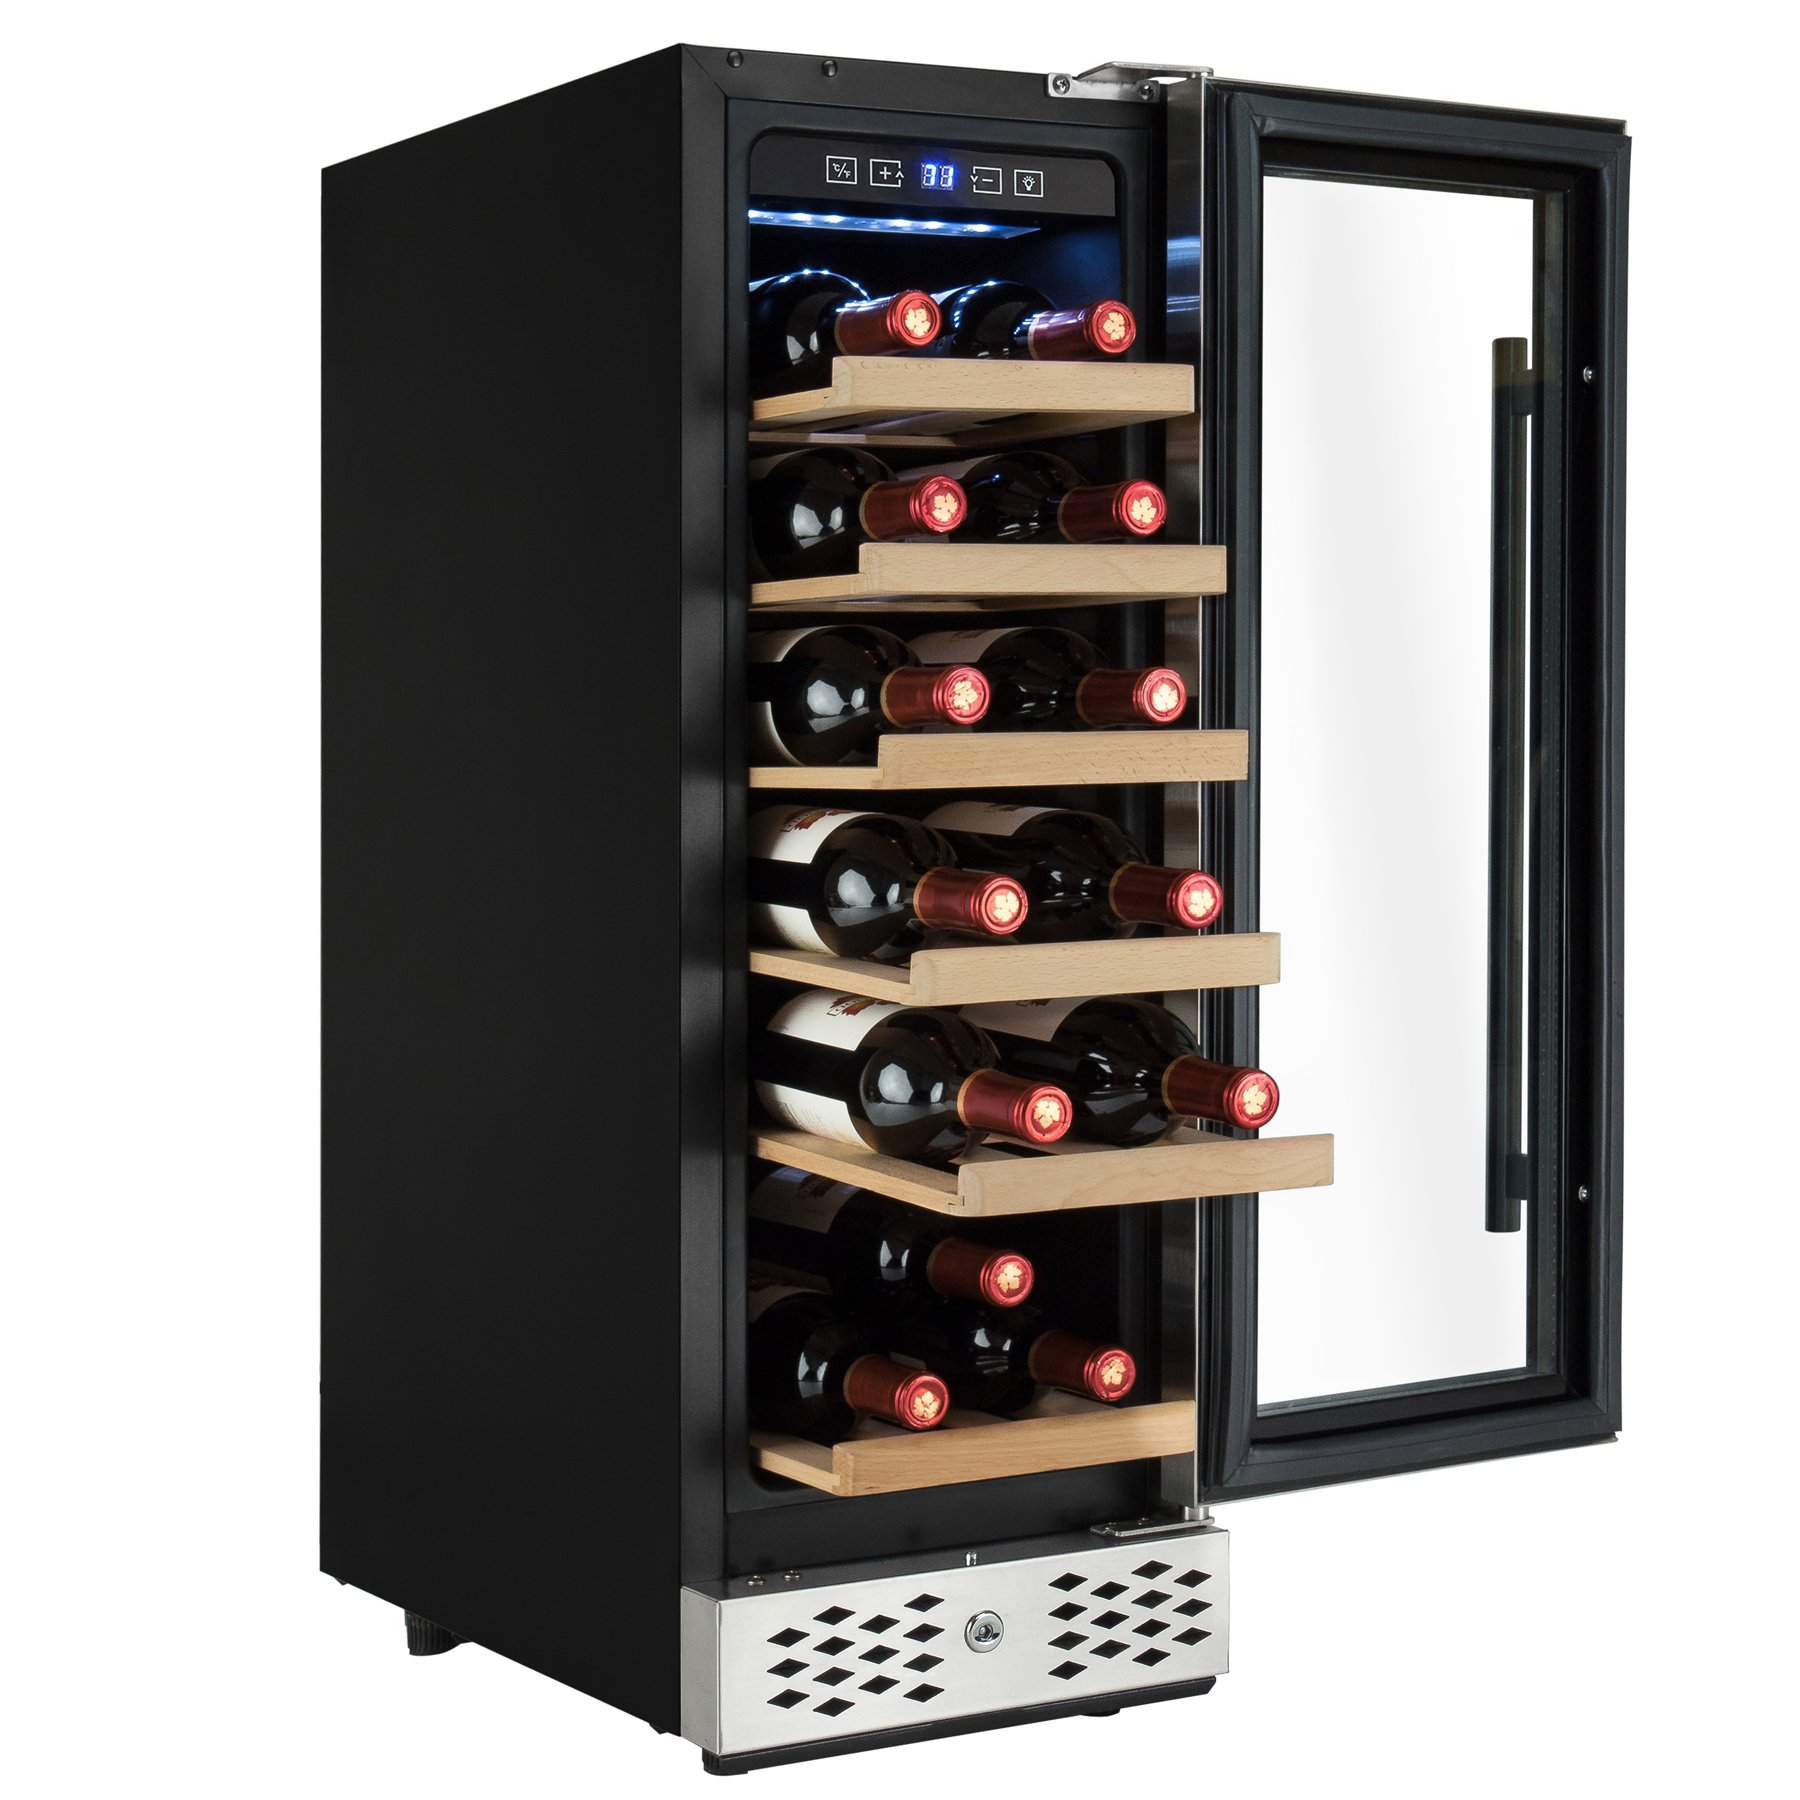 AKDY 18 Bottle Single Zone Freestanding Adjustable Temperature Touch Control Wine Cooler w/ Built-in Compressor